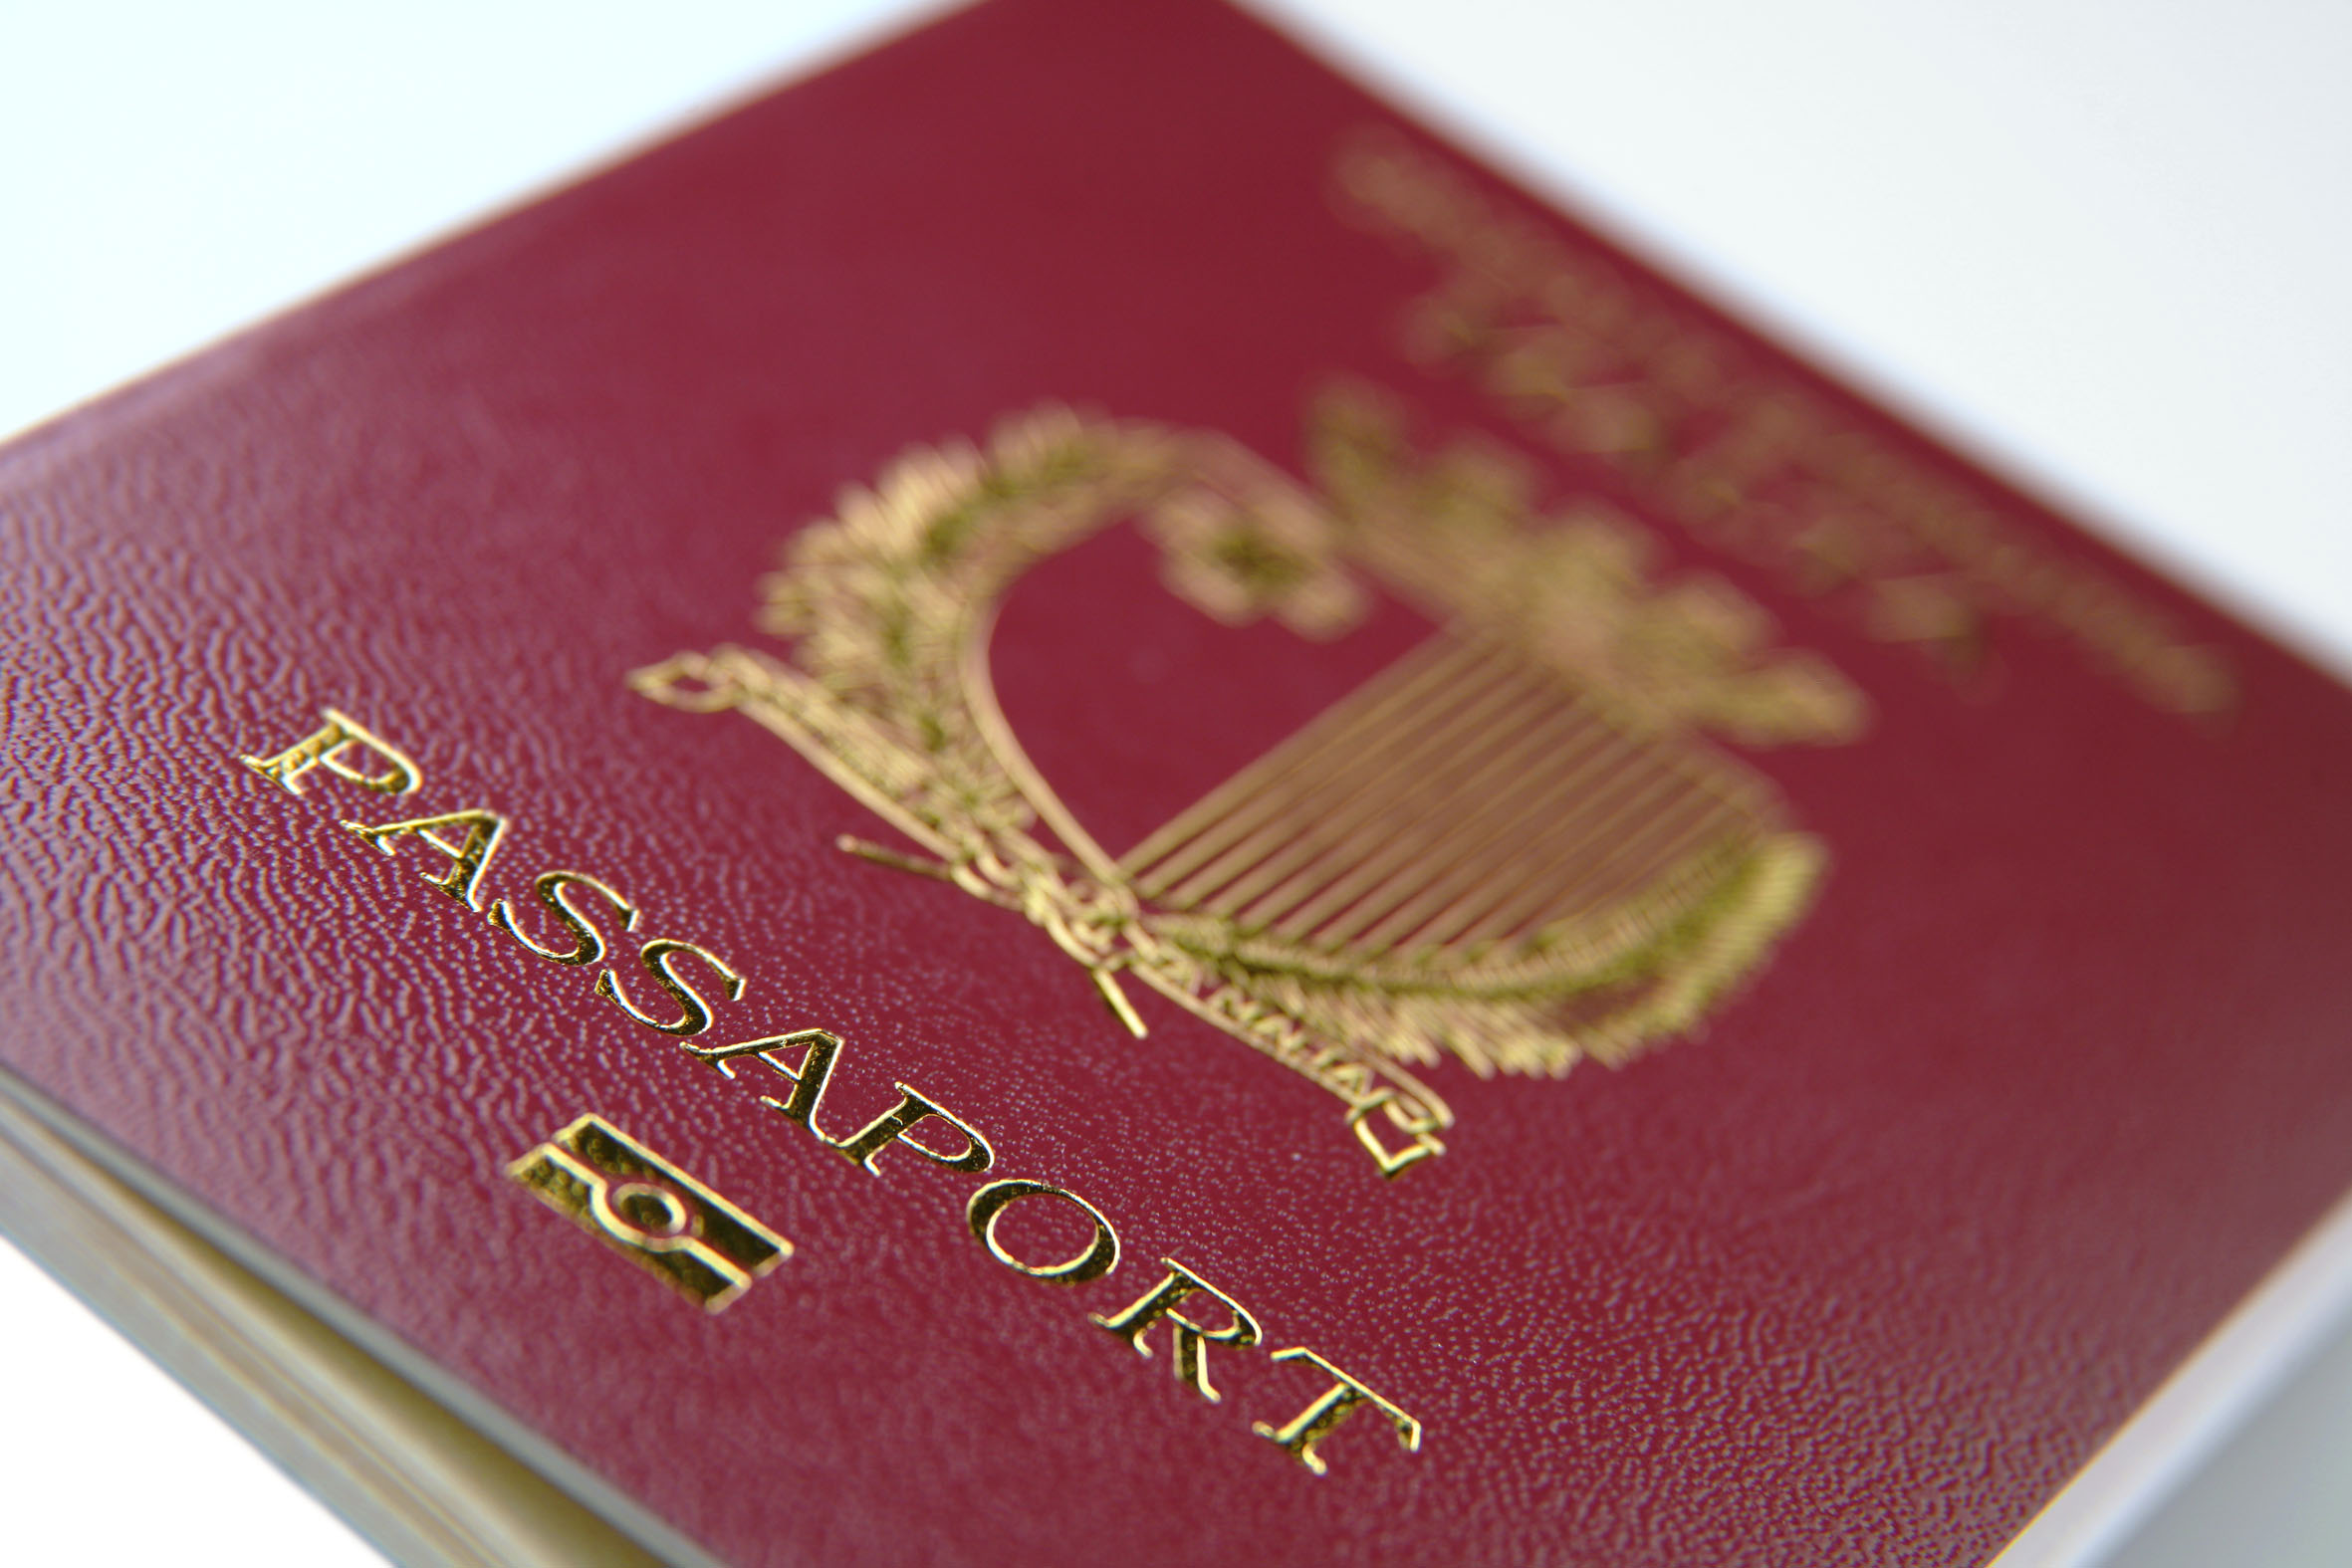 Malta-passport-(2010)-cover-3.jpg